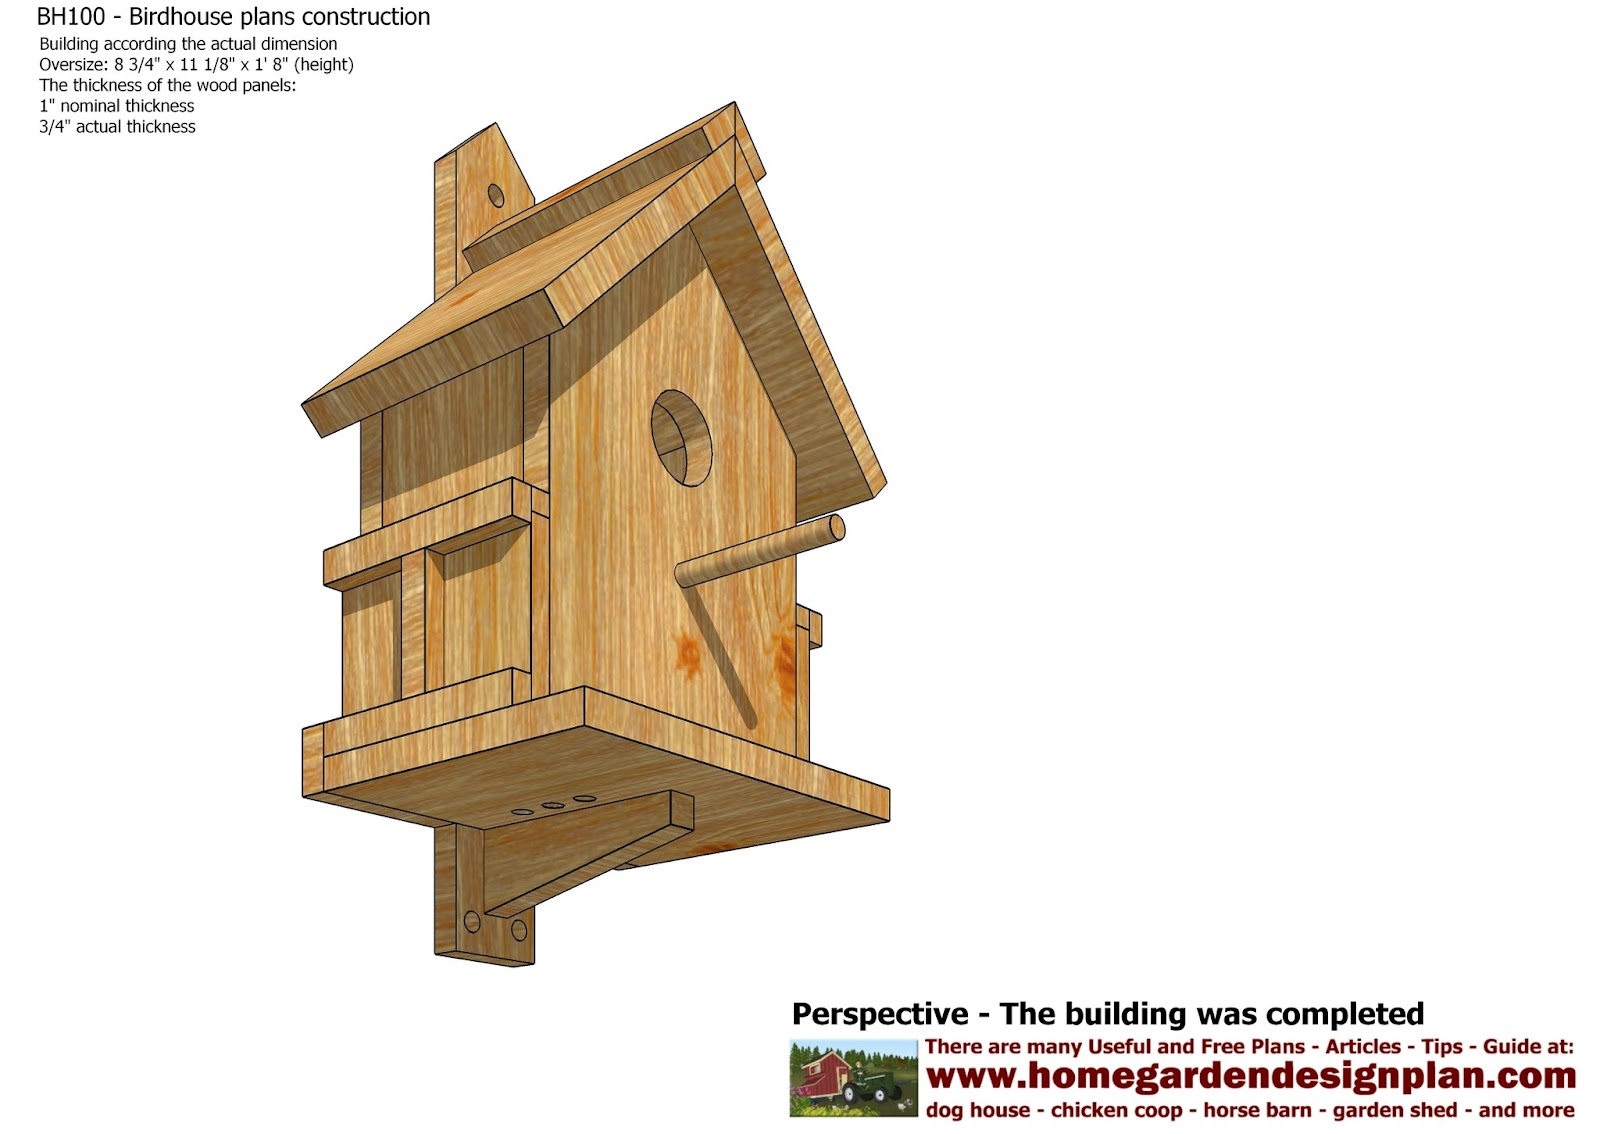 Build a coop blog bh100 bird house plans construction for House plan builder free